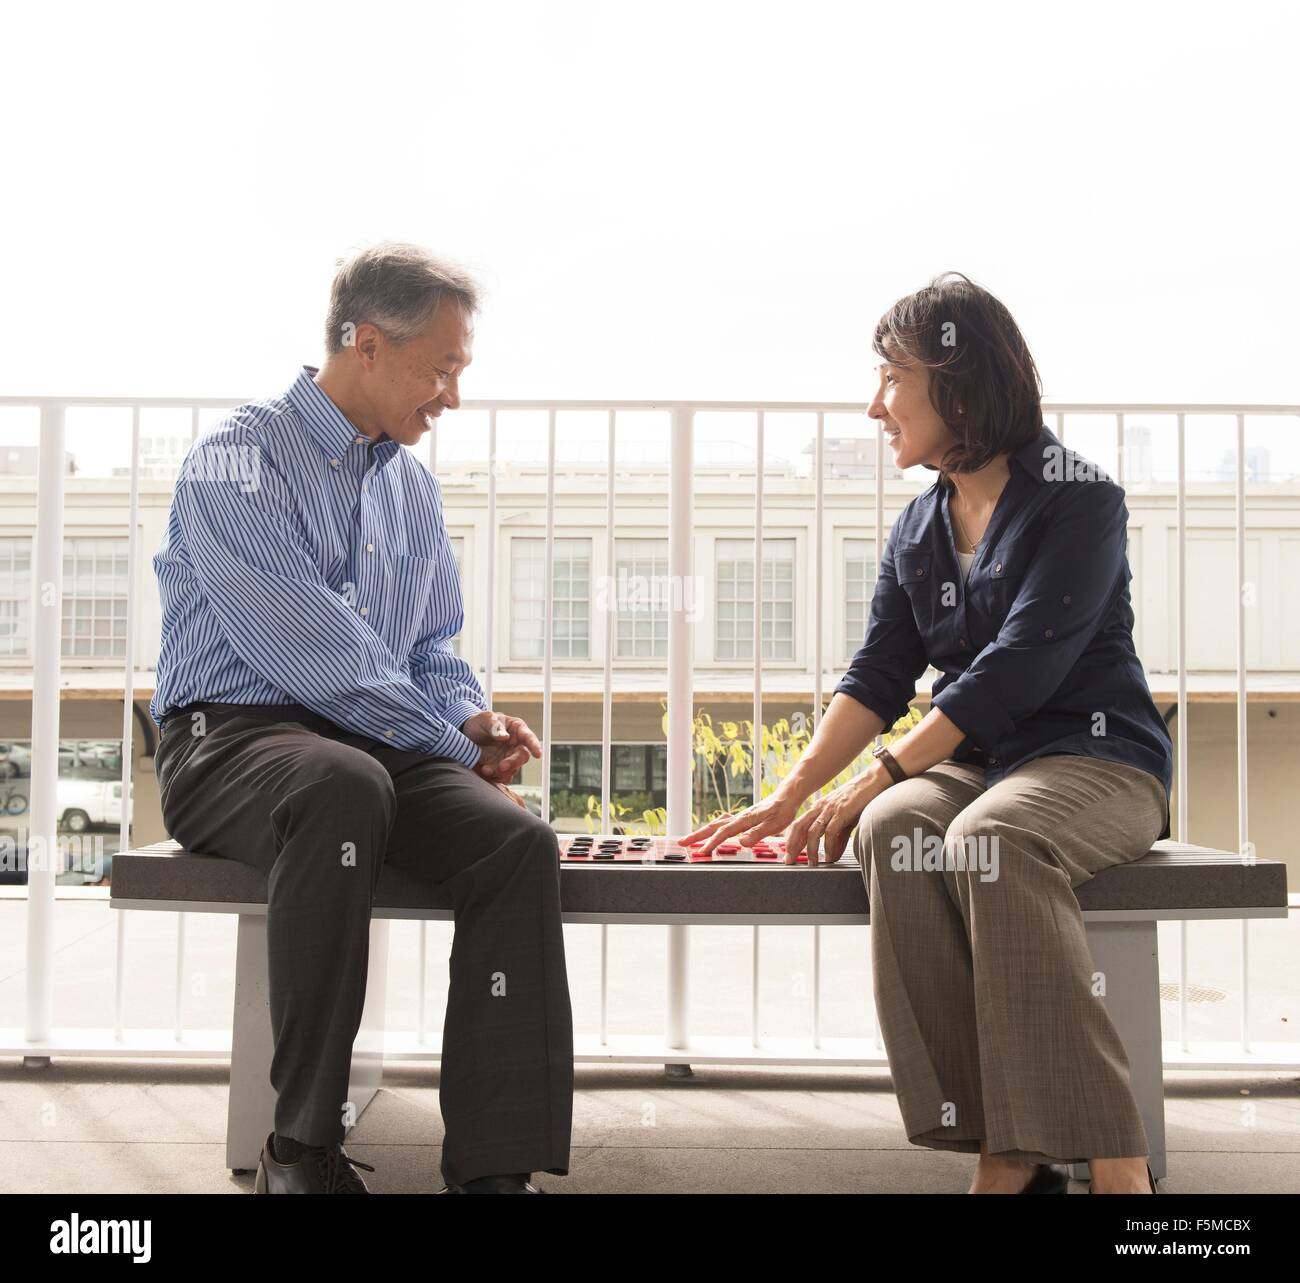 Mature couple sitting on bench face to face playing draughts - Stock Image